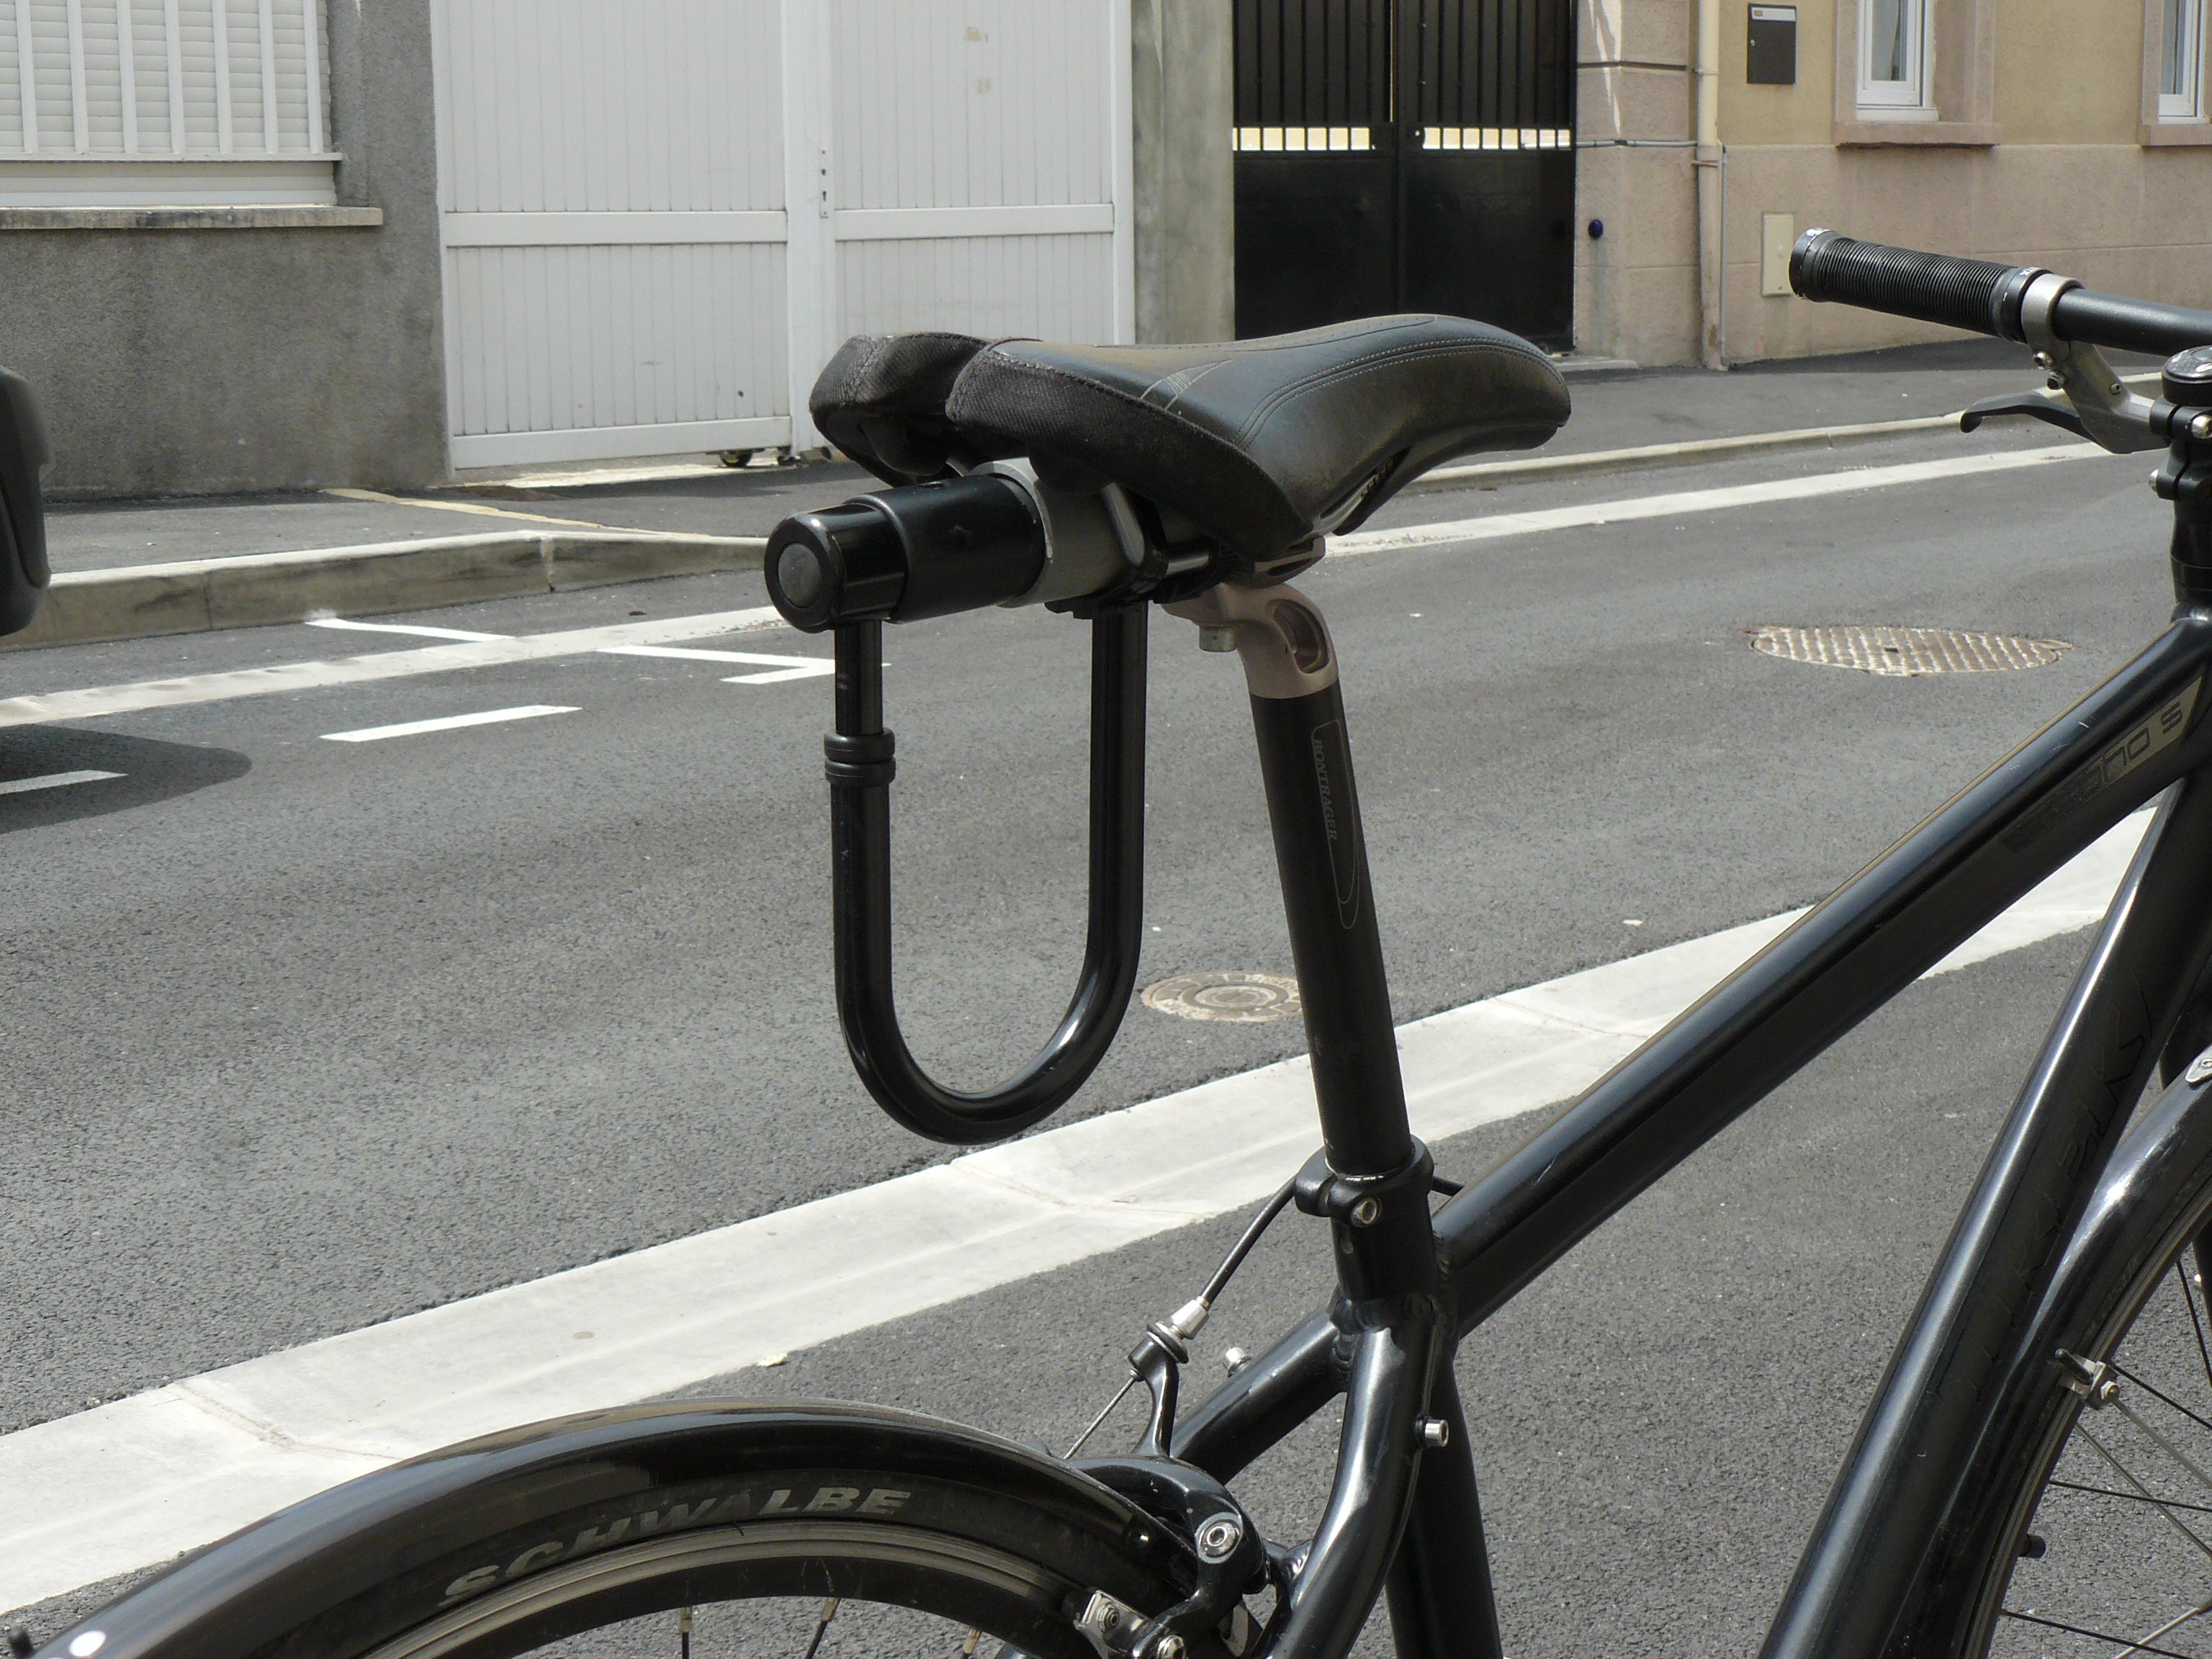 A stronger Mini-u Bike holder